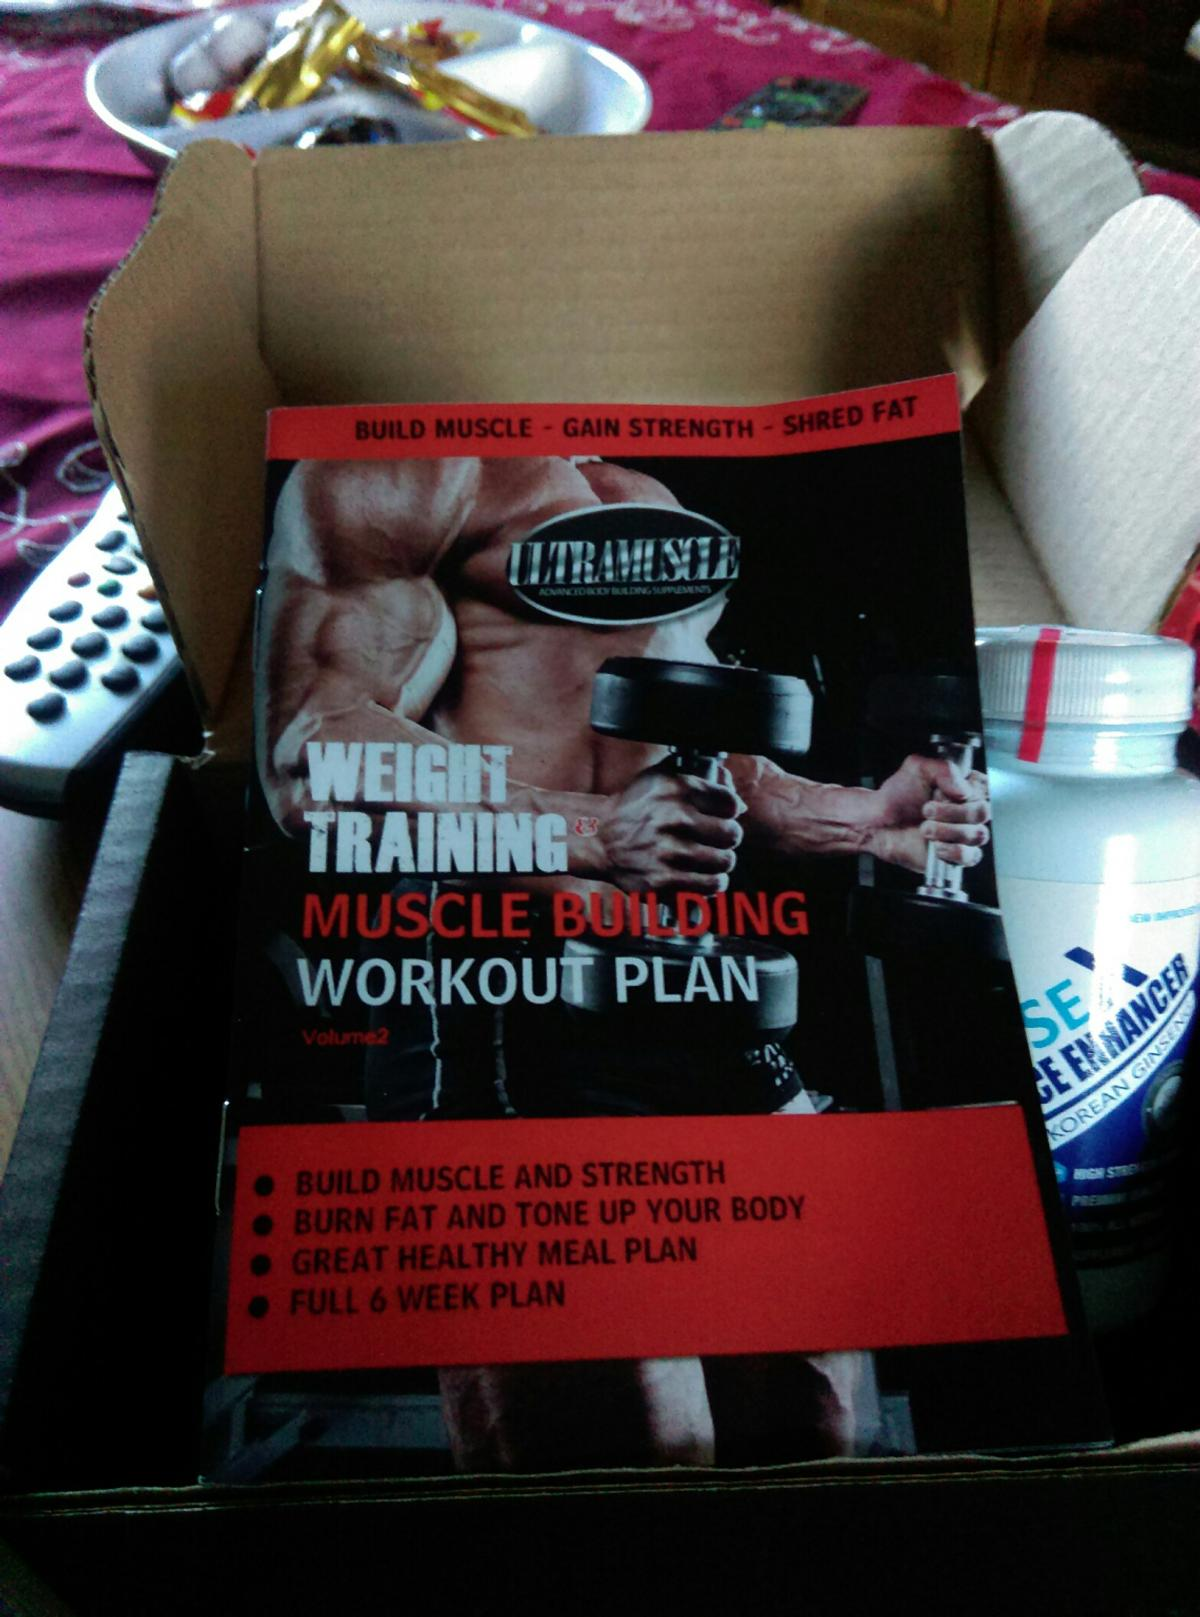 weight training muscle building workout plan